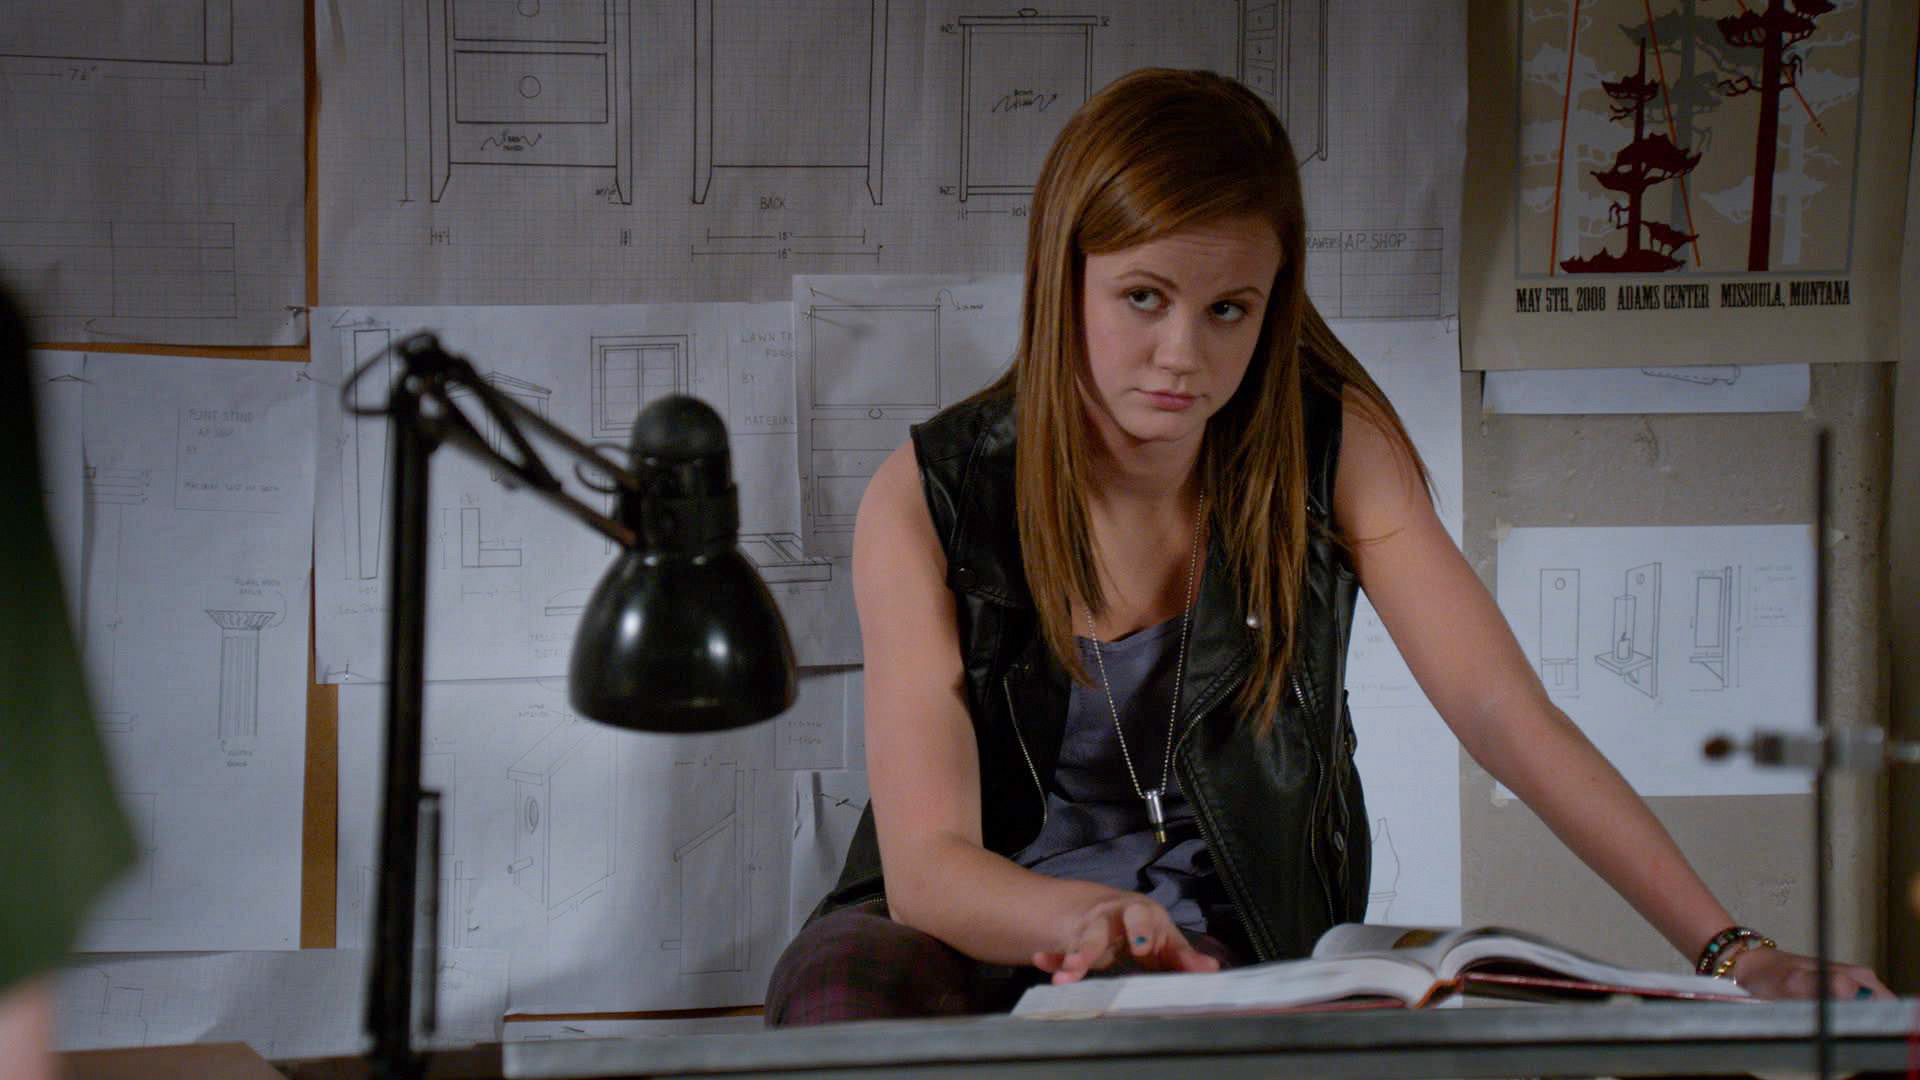 19. Mackenzie Lintz is from a family of actors, but always preferred sports to being in front of the camera.